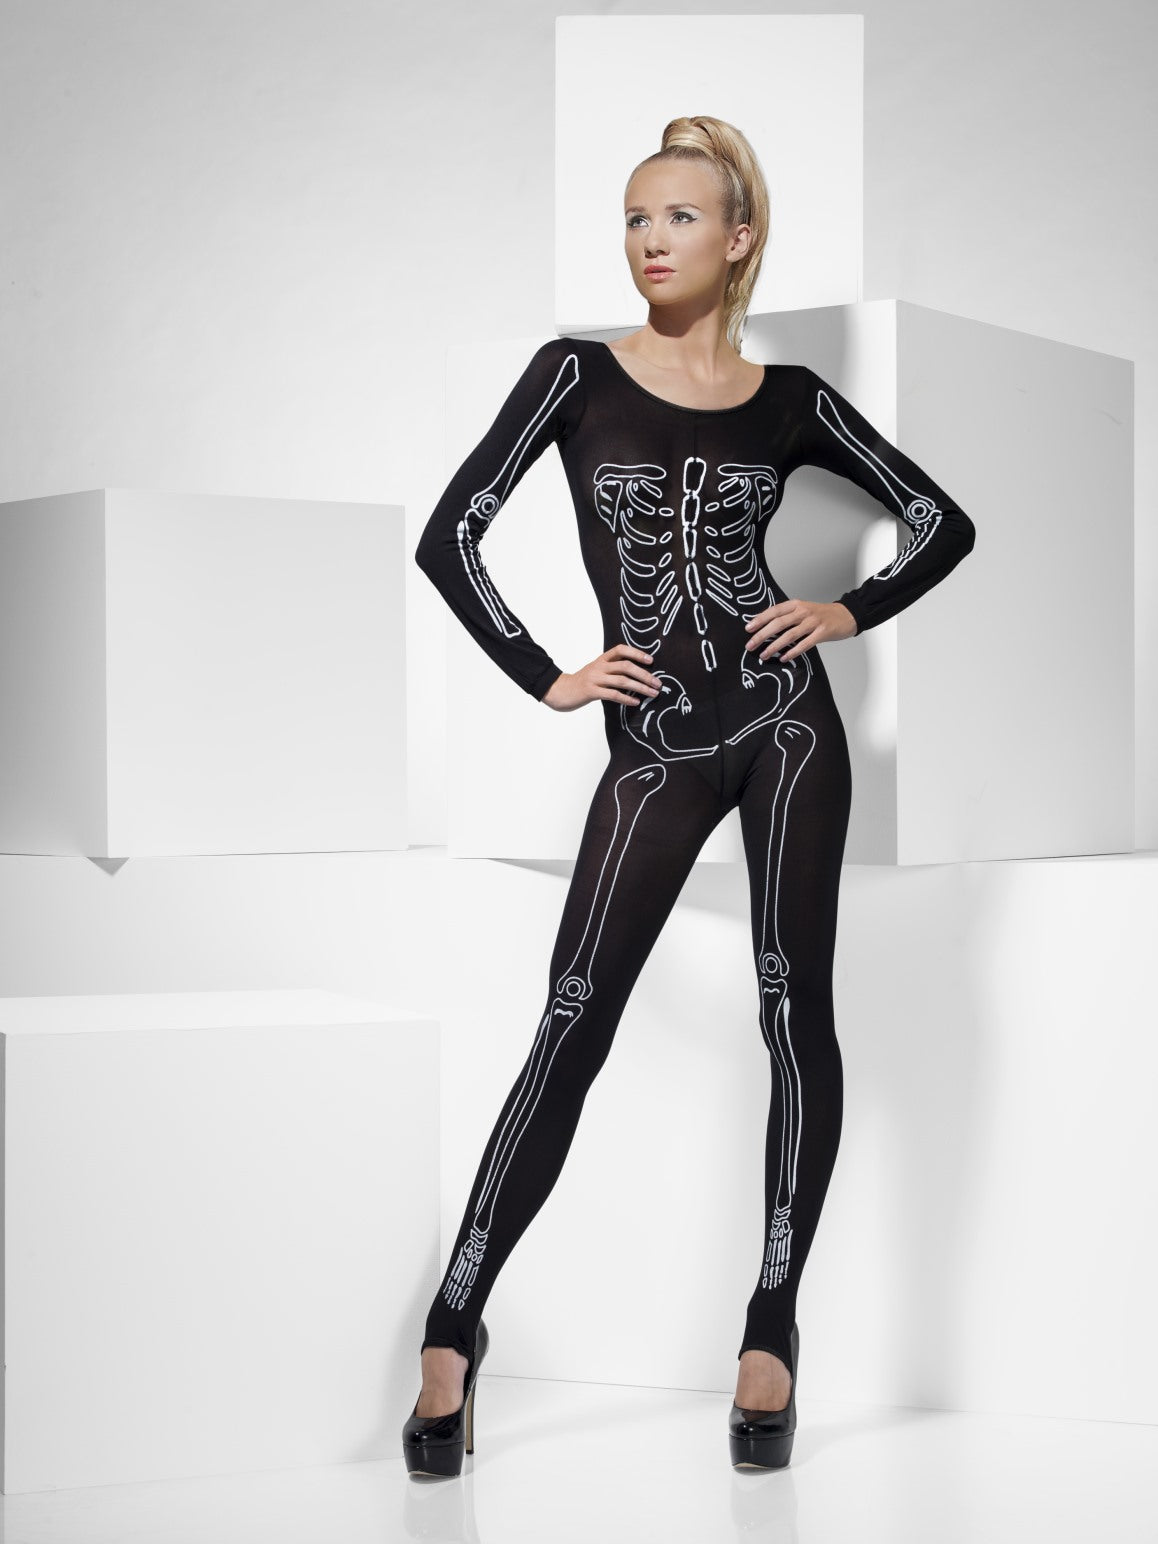 Women's Costume - Skeleton Print Bodysuit